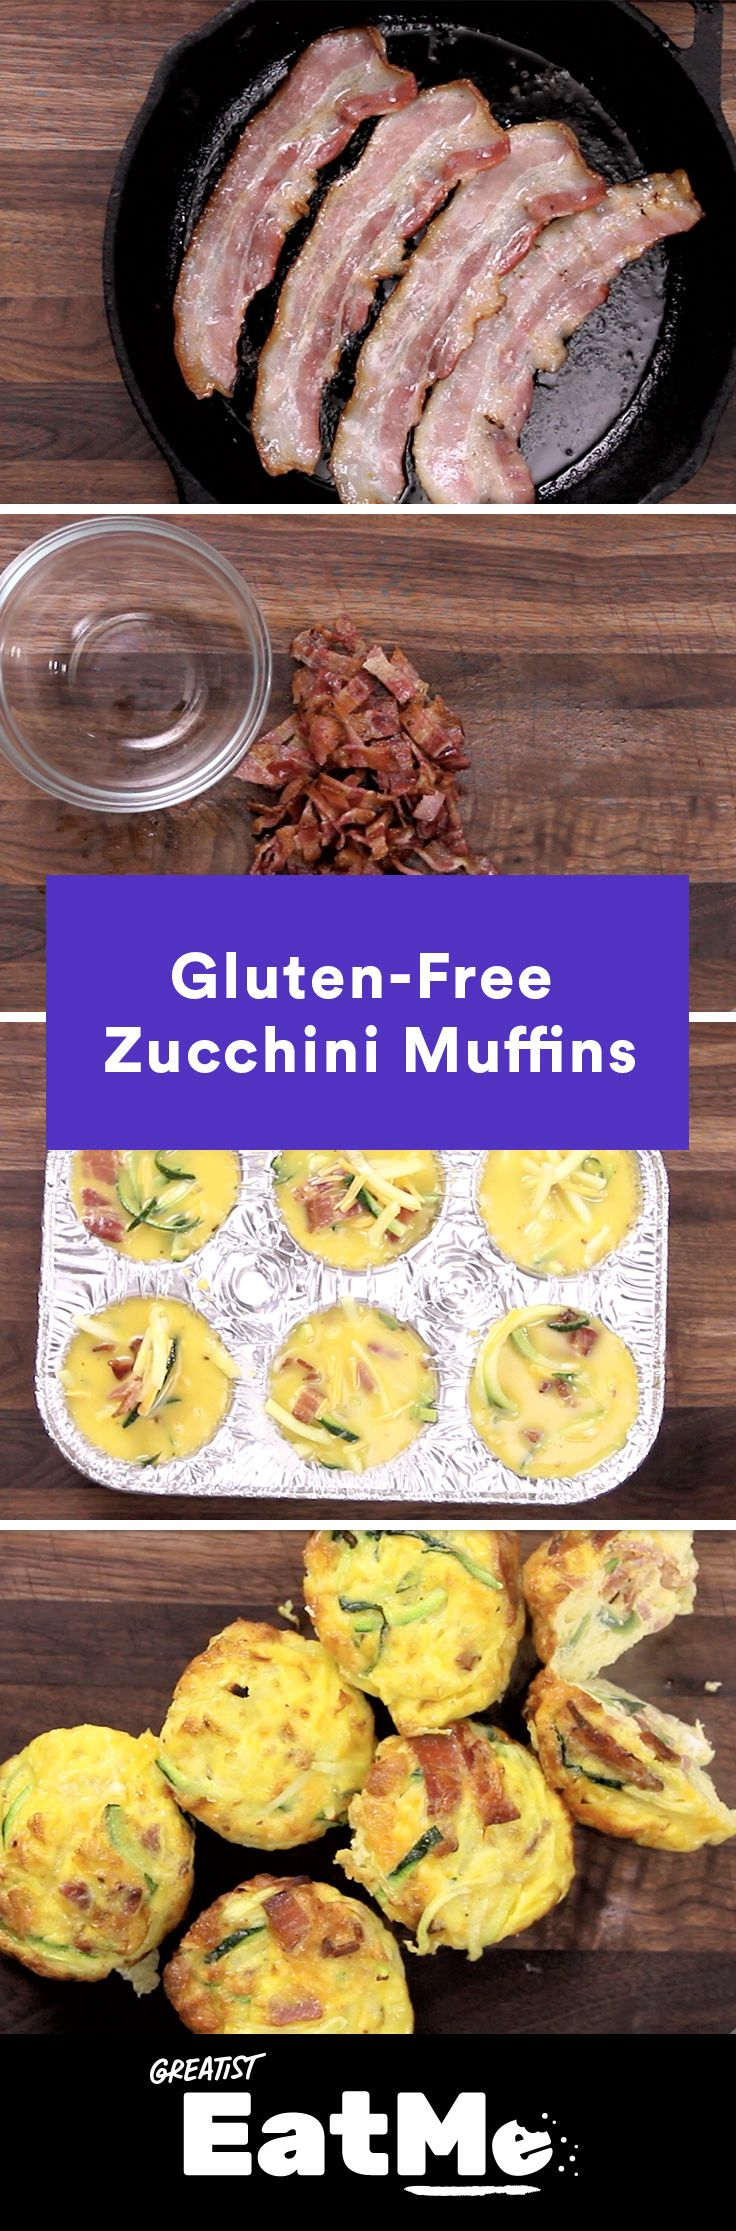 Savory breakfast FTW. #zucchini #egg #bacon #muffin #recipe http://greatist.com/eat/frittata-muffins-with-zucchini-and-bacon-recipe-video